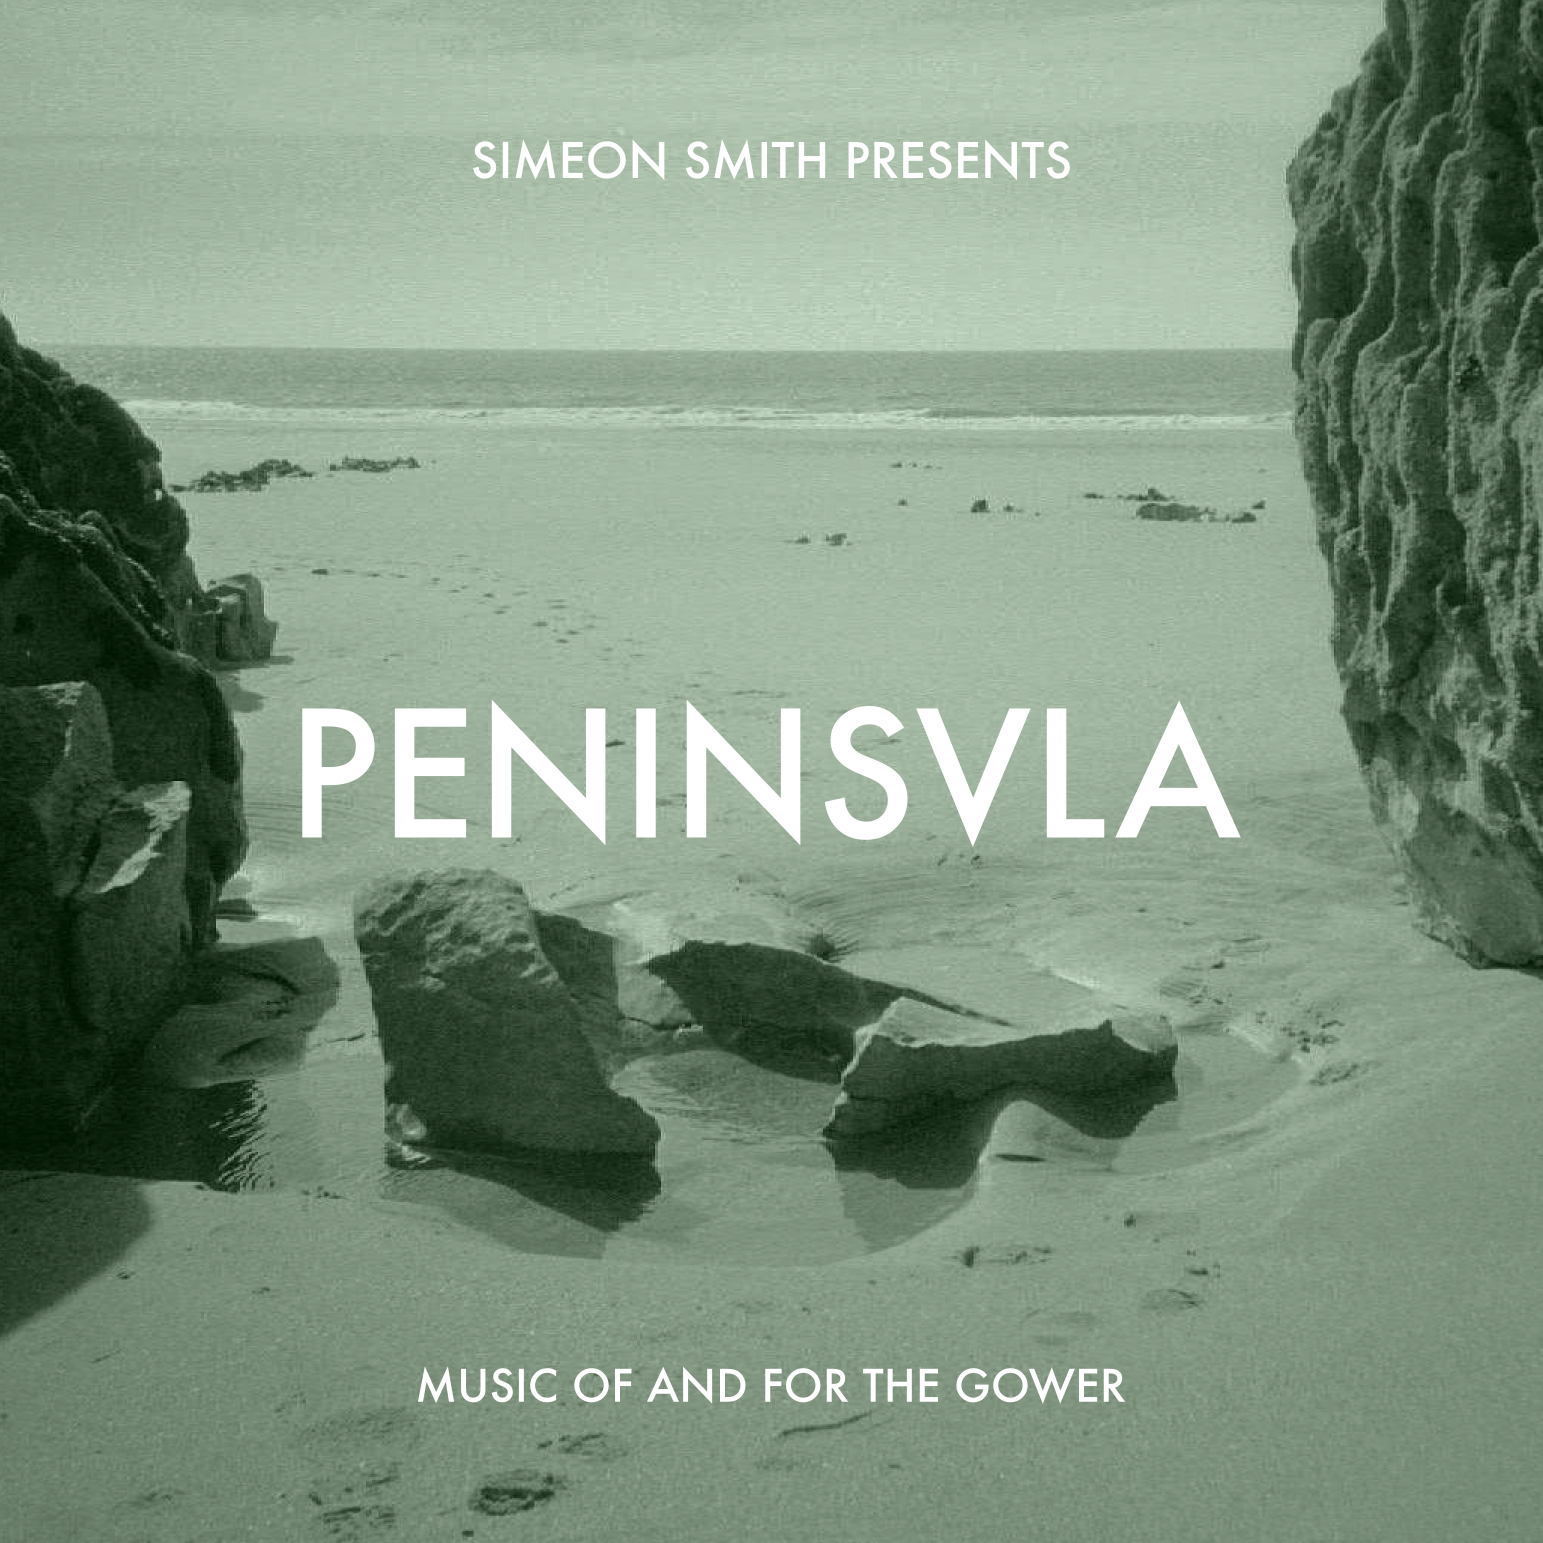 peninsvla cover.jpg